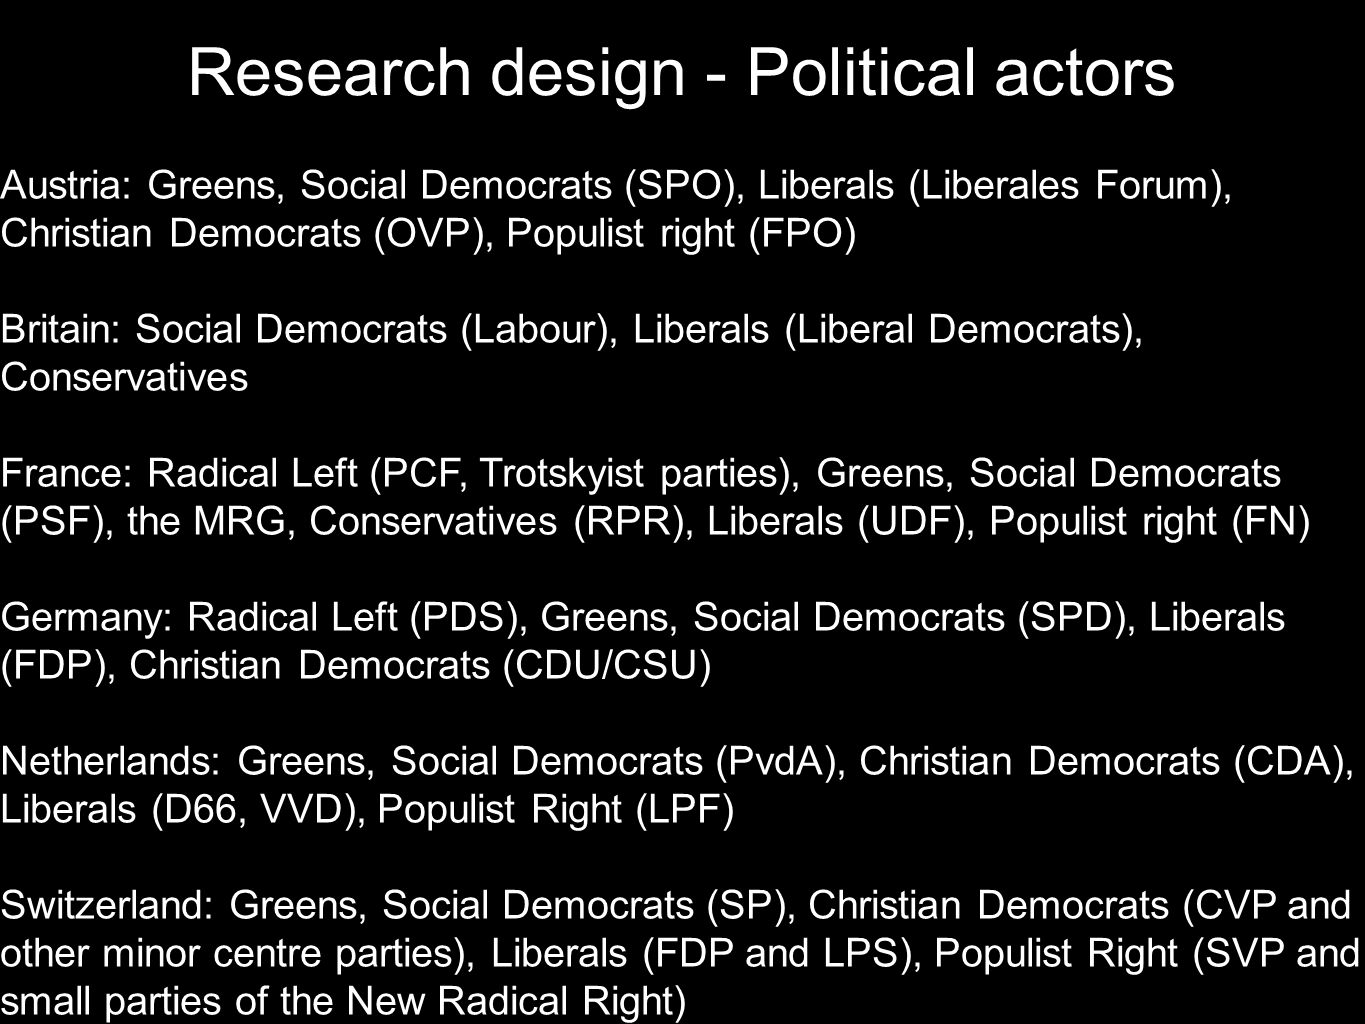 Research design - Political actors